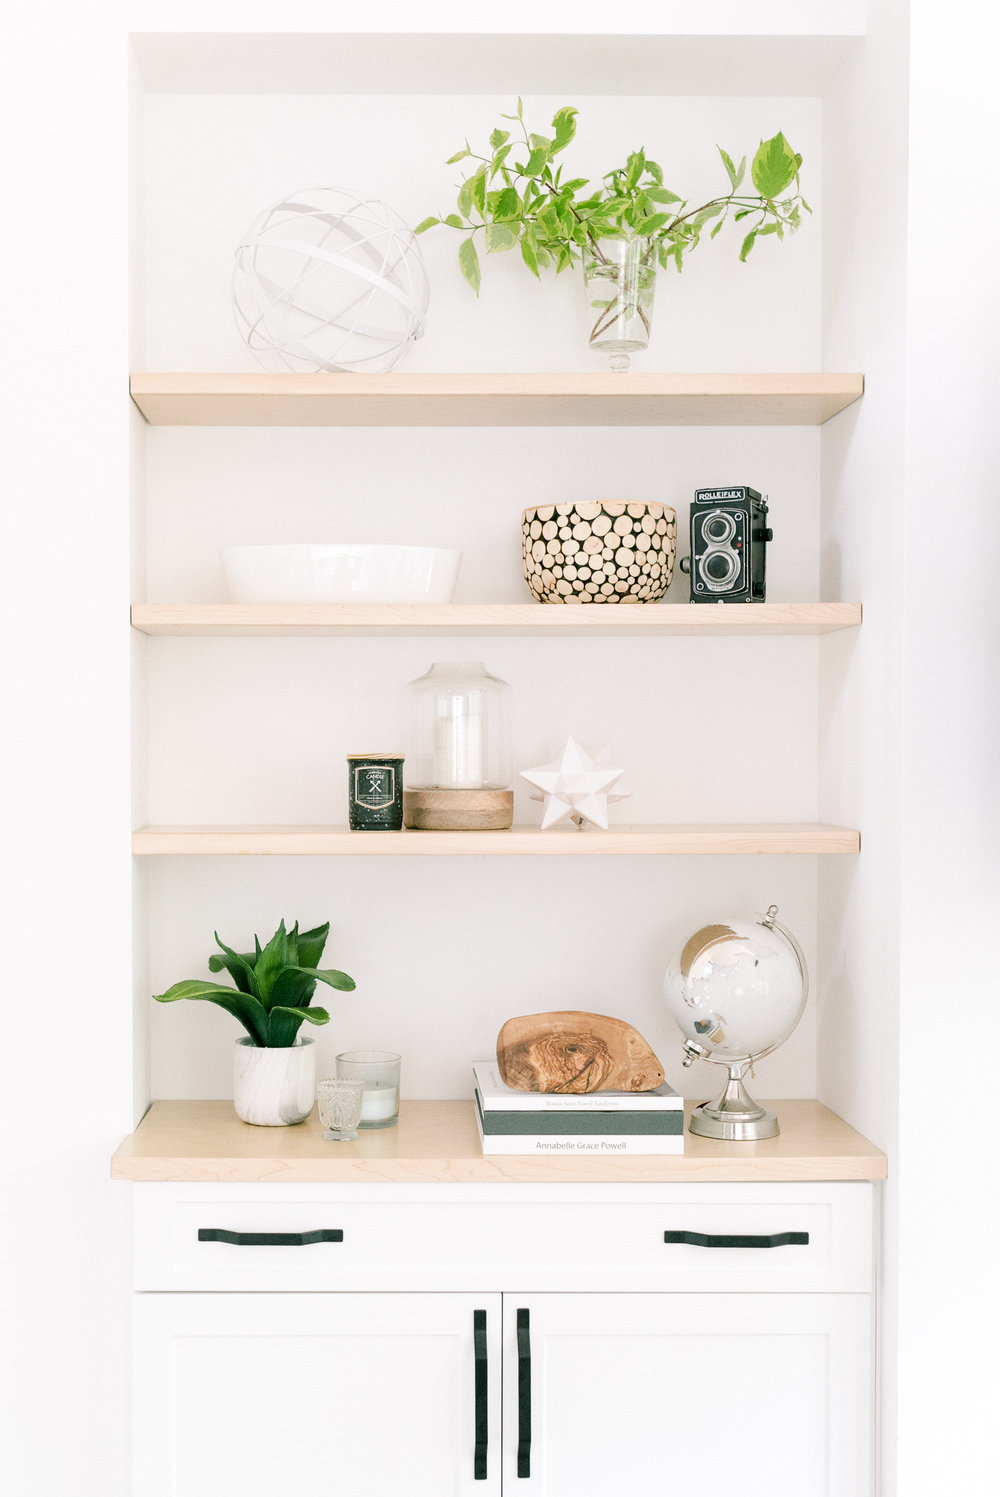 Interior-Design-Carp-Project-Shelf-White-Wood-Open